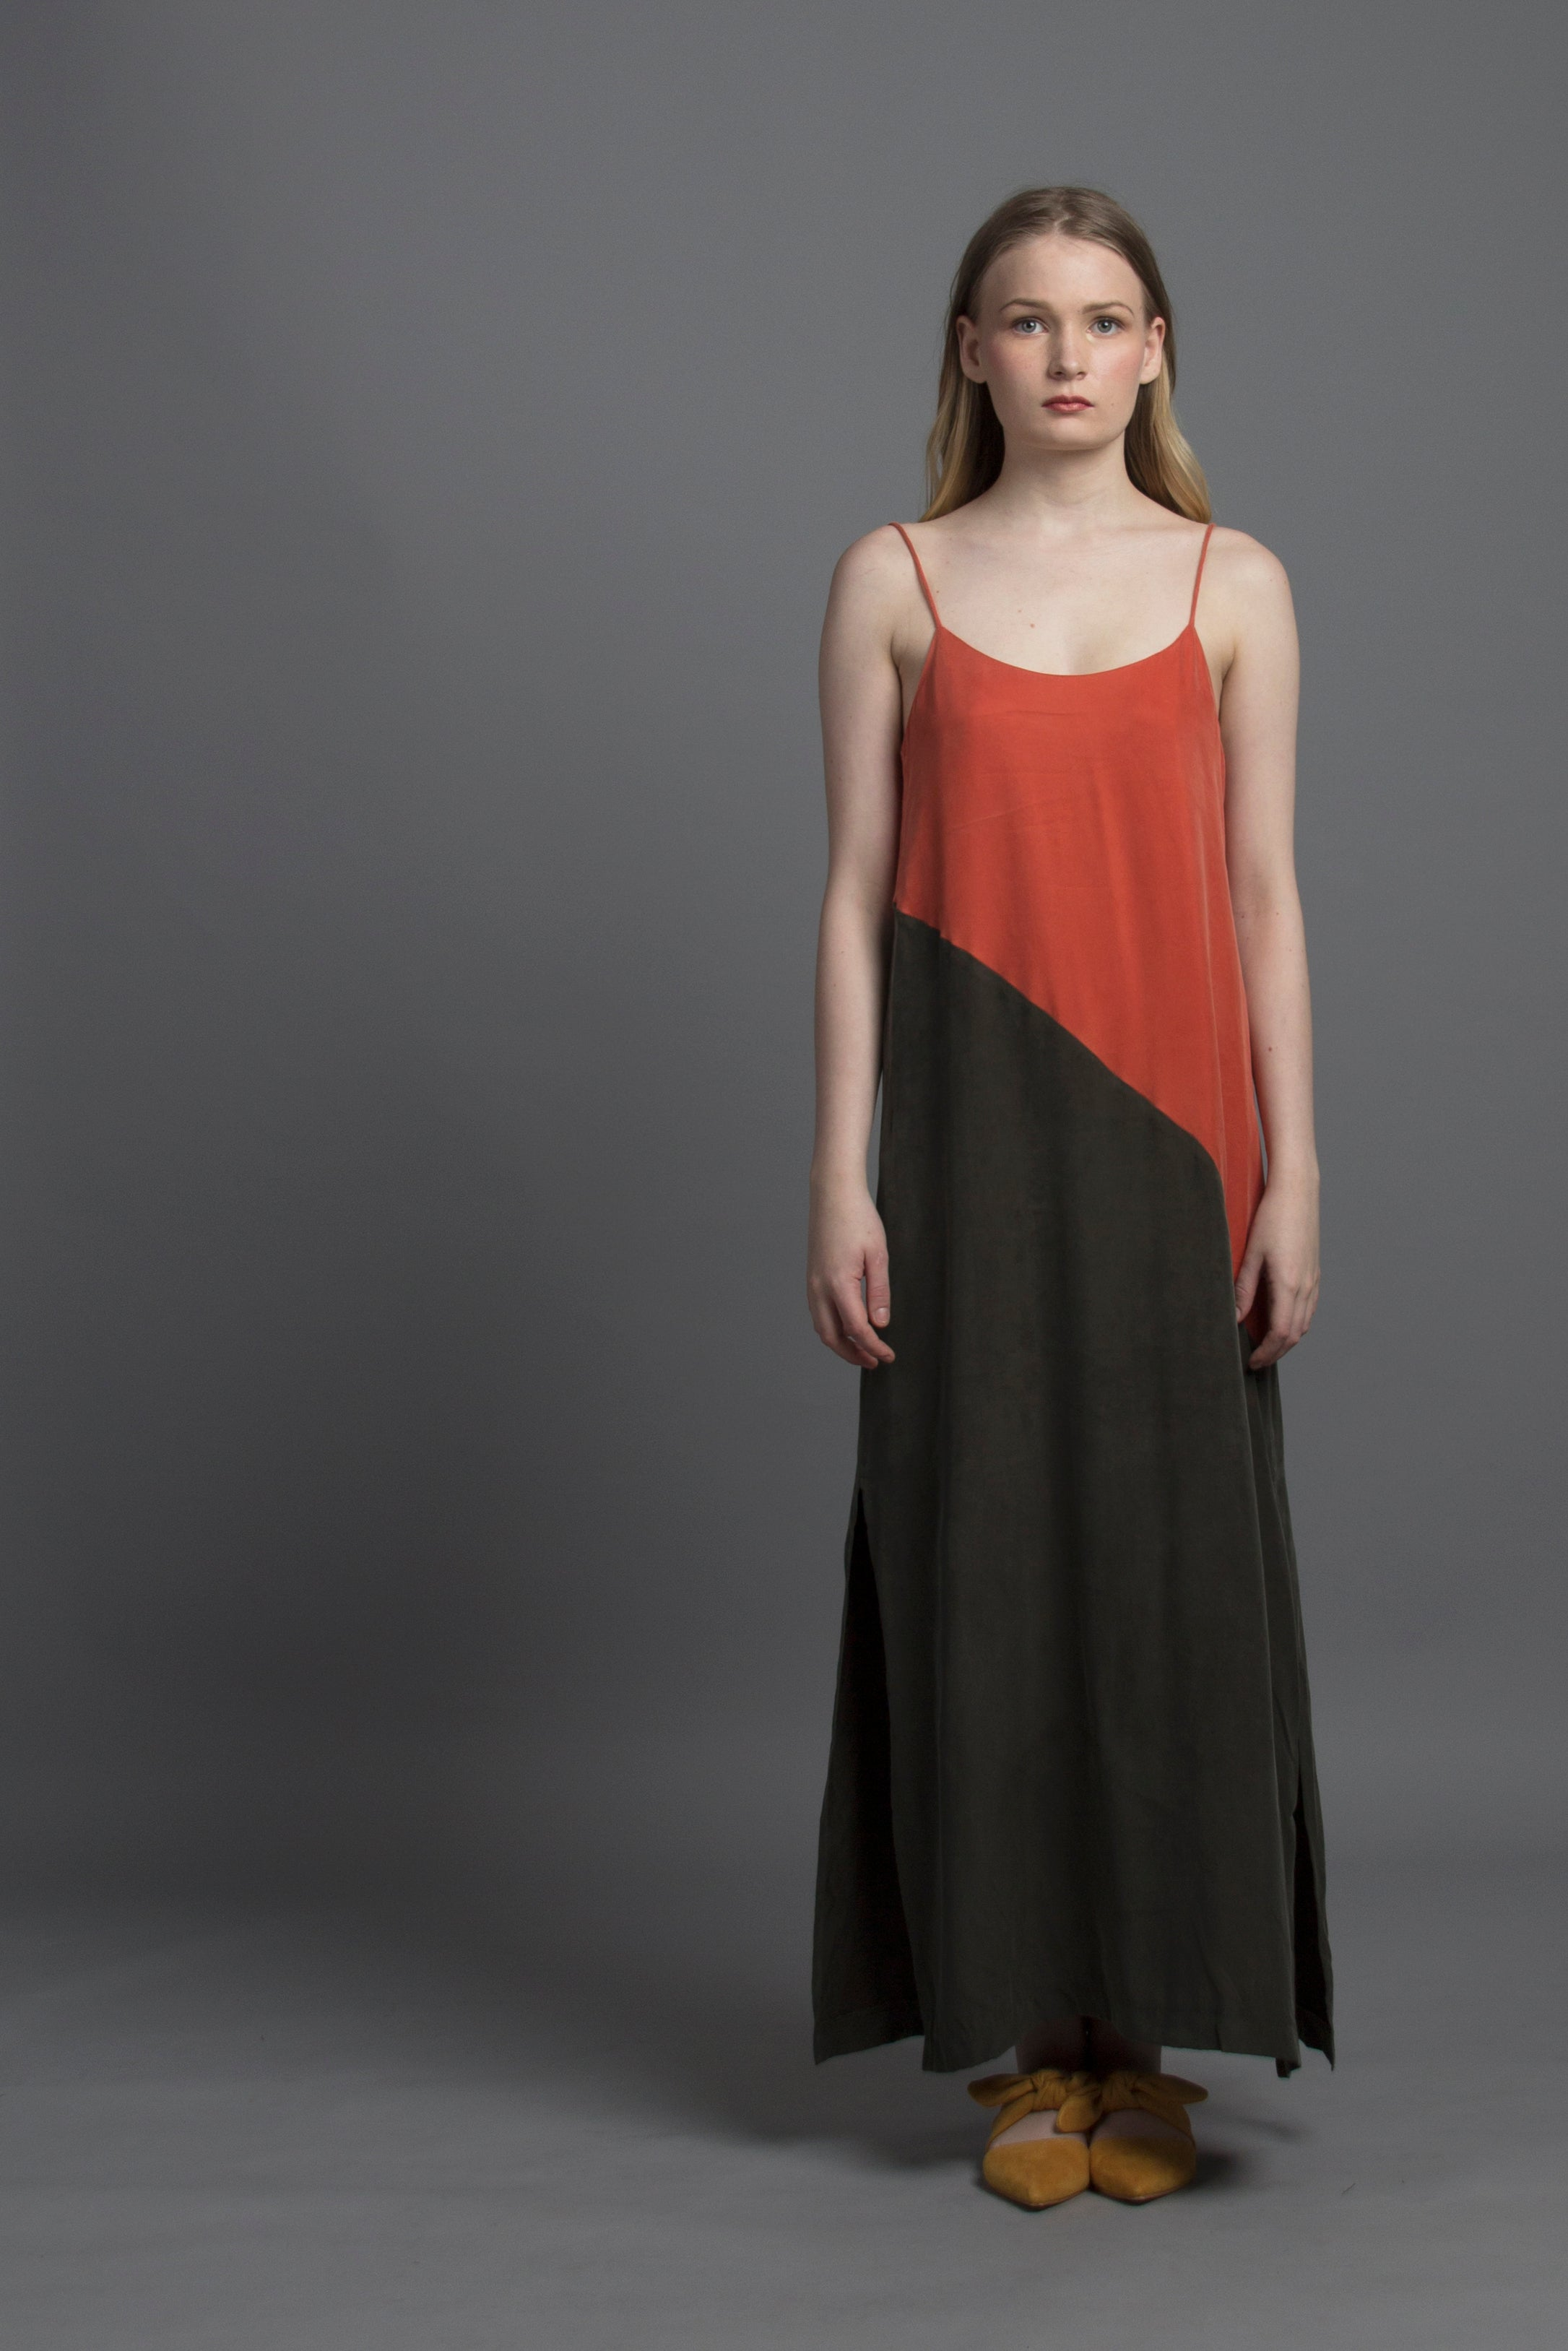 Basic Spag Combi Dress (Burnt Orange / Olive)